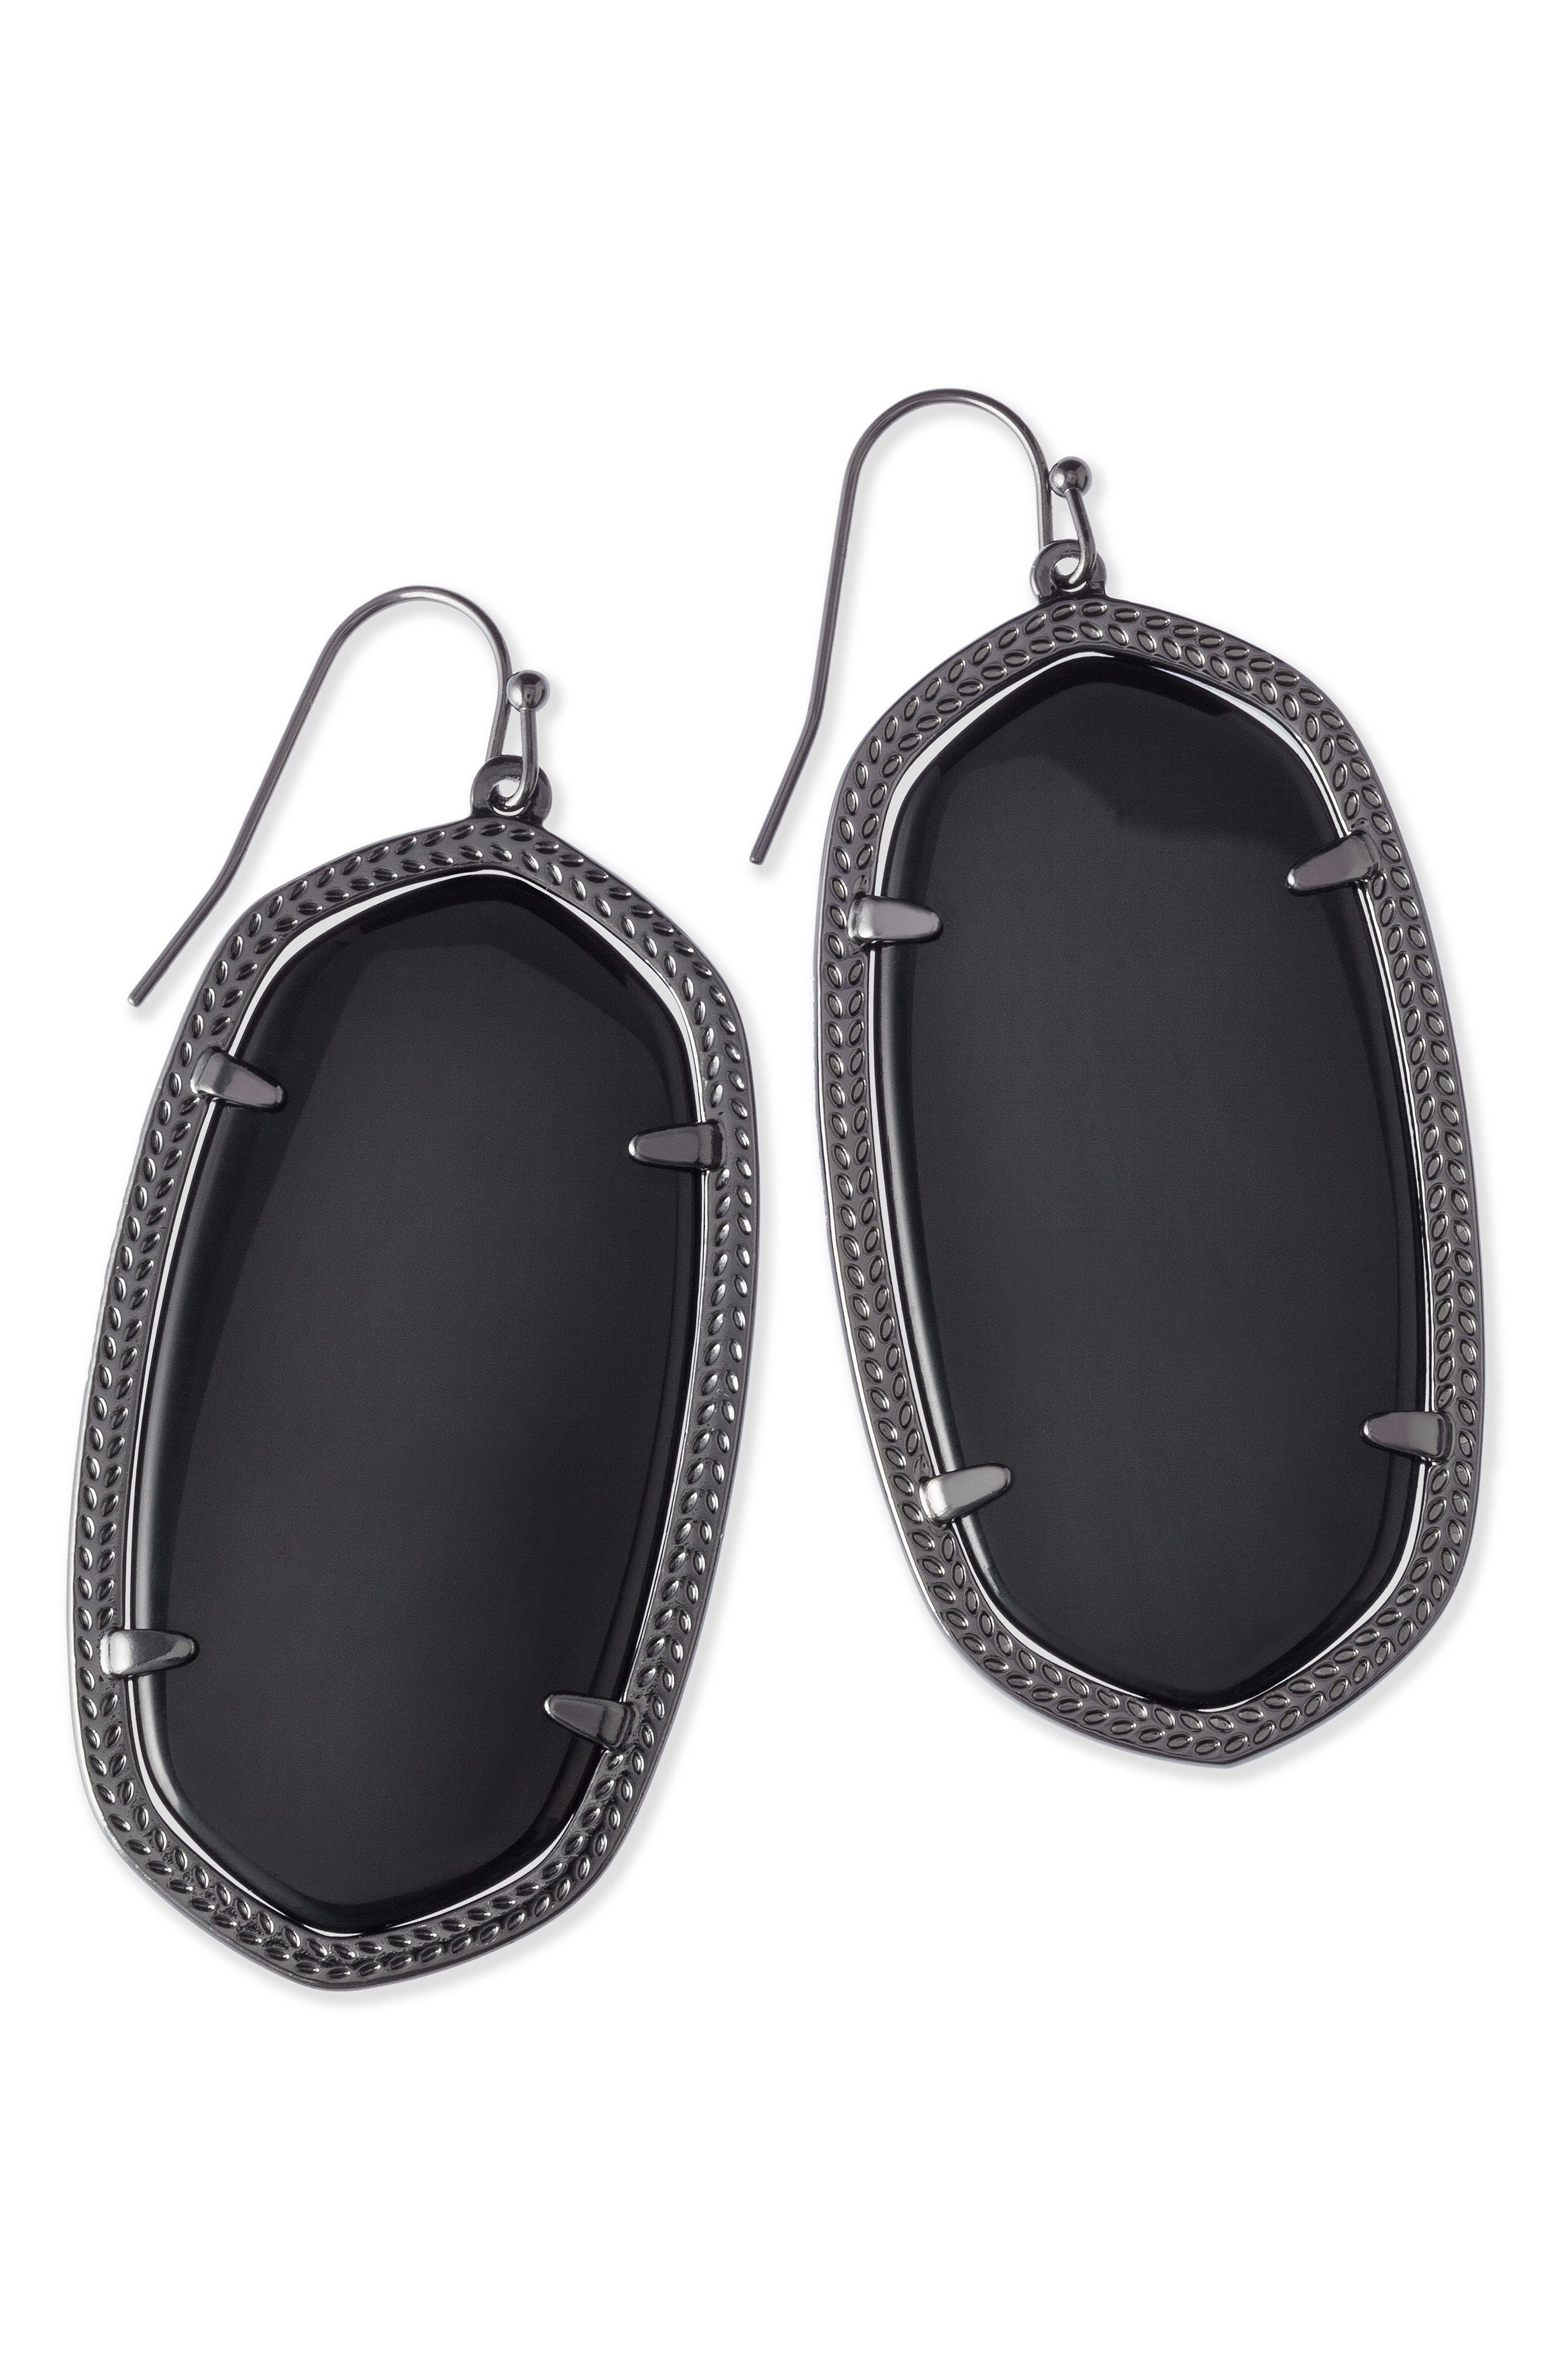 Danielle - Large Oval Statement Earrings,                             Alternate thumbnail 300, color,